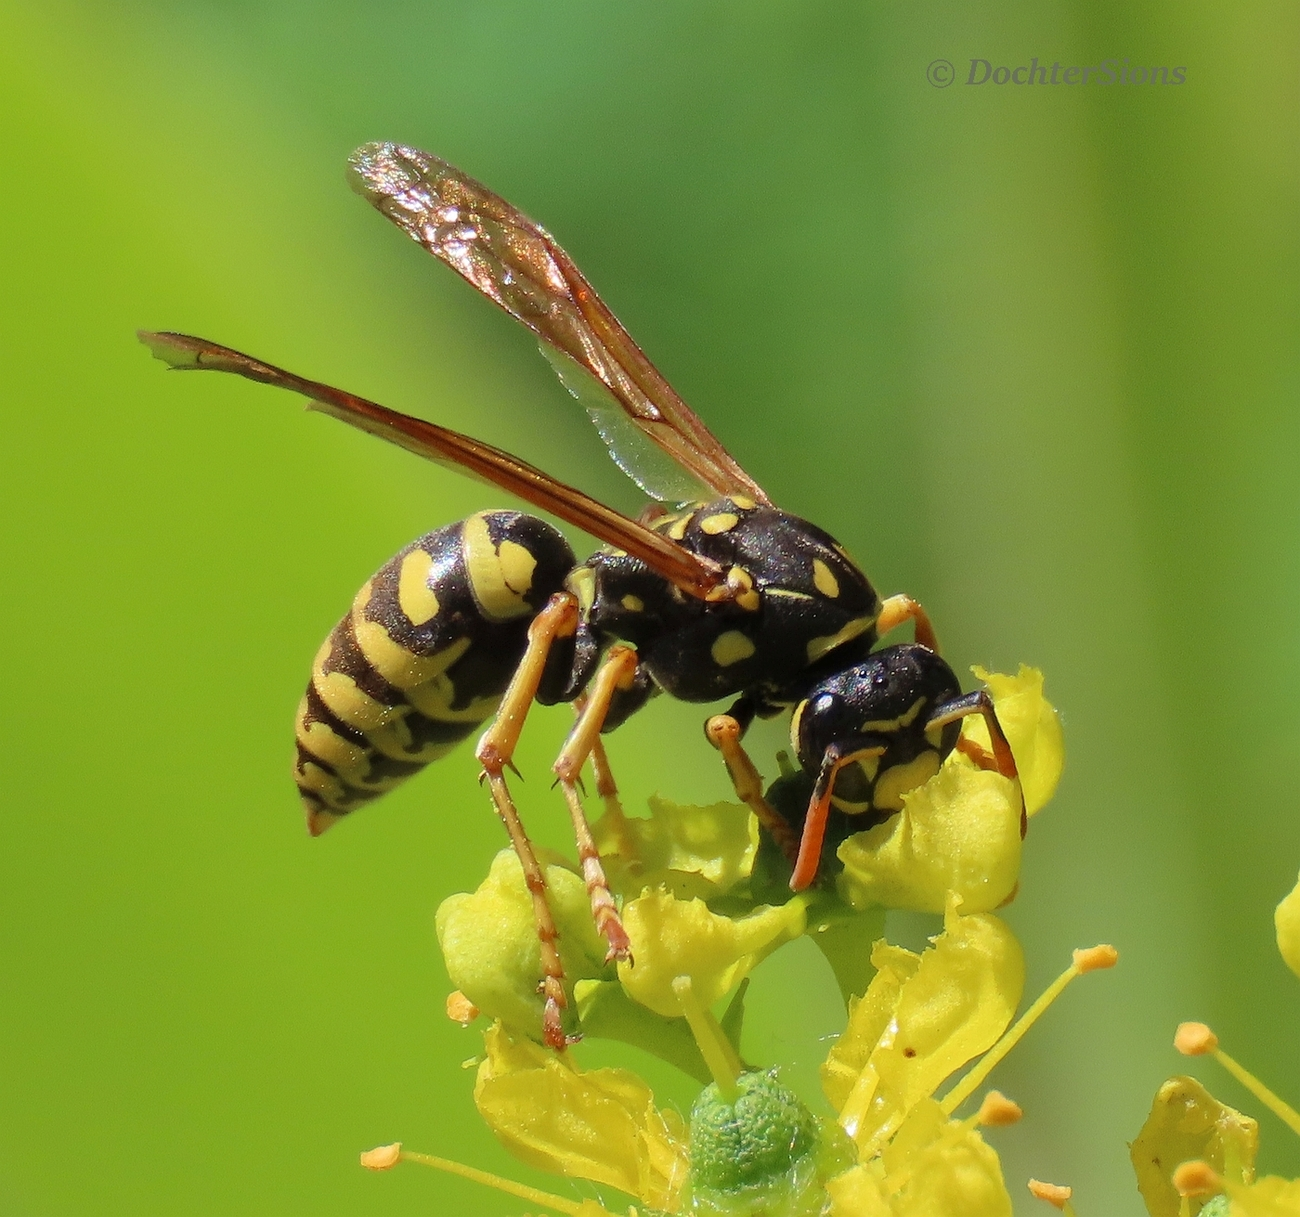 Wasp on Common rue by dochtersions